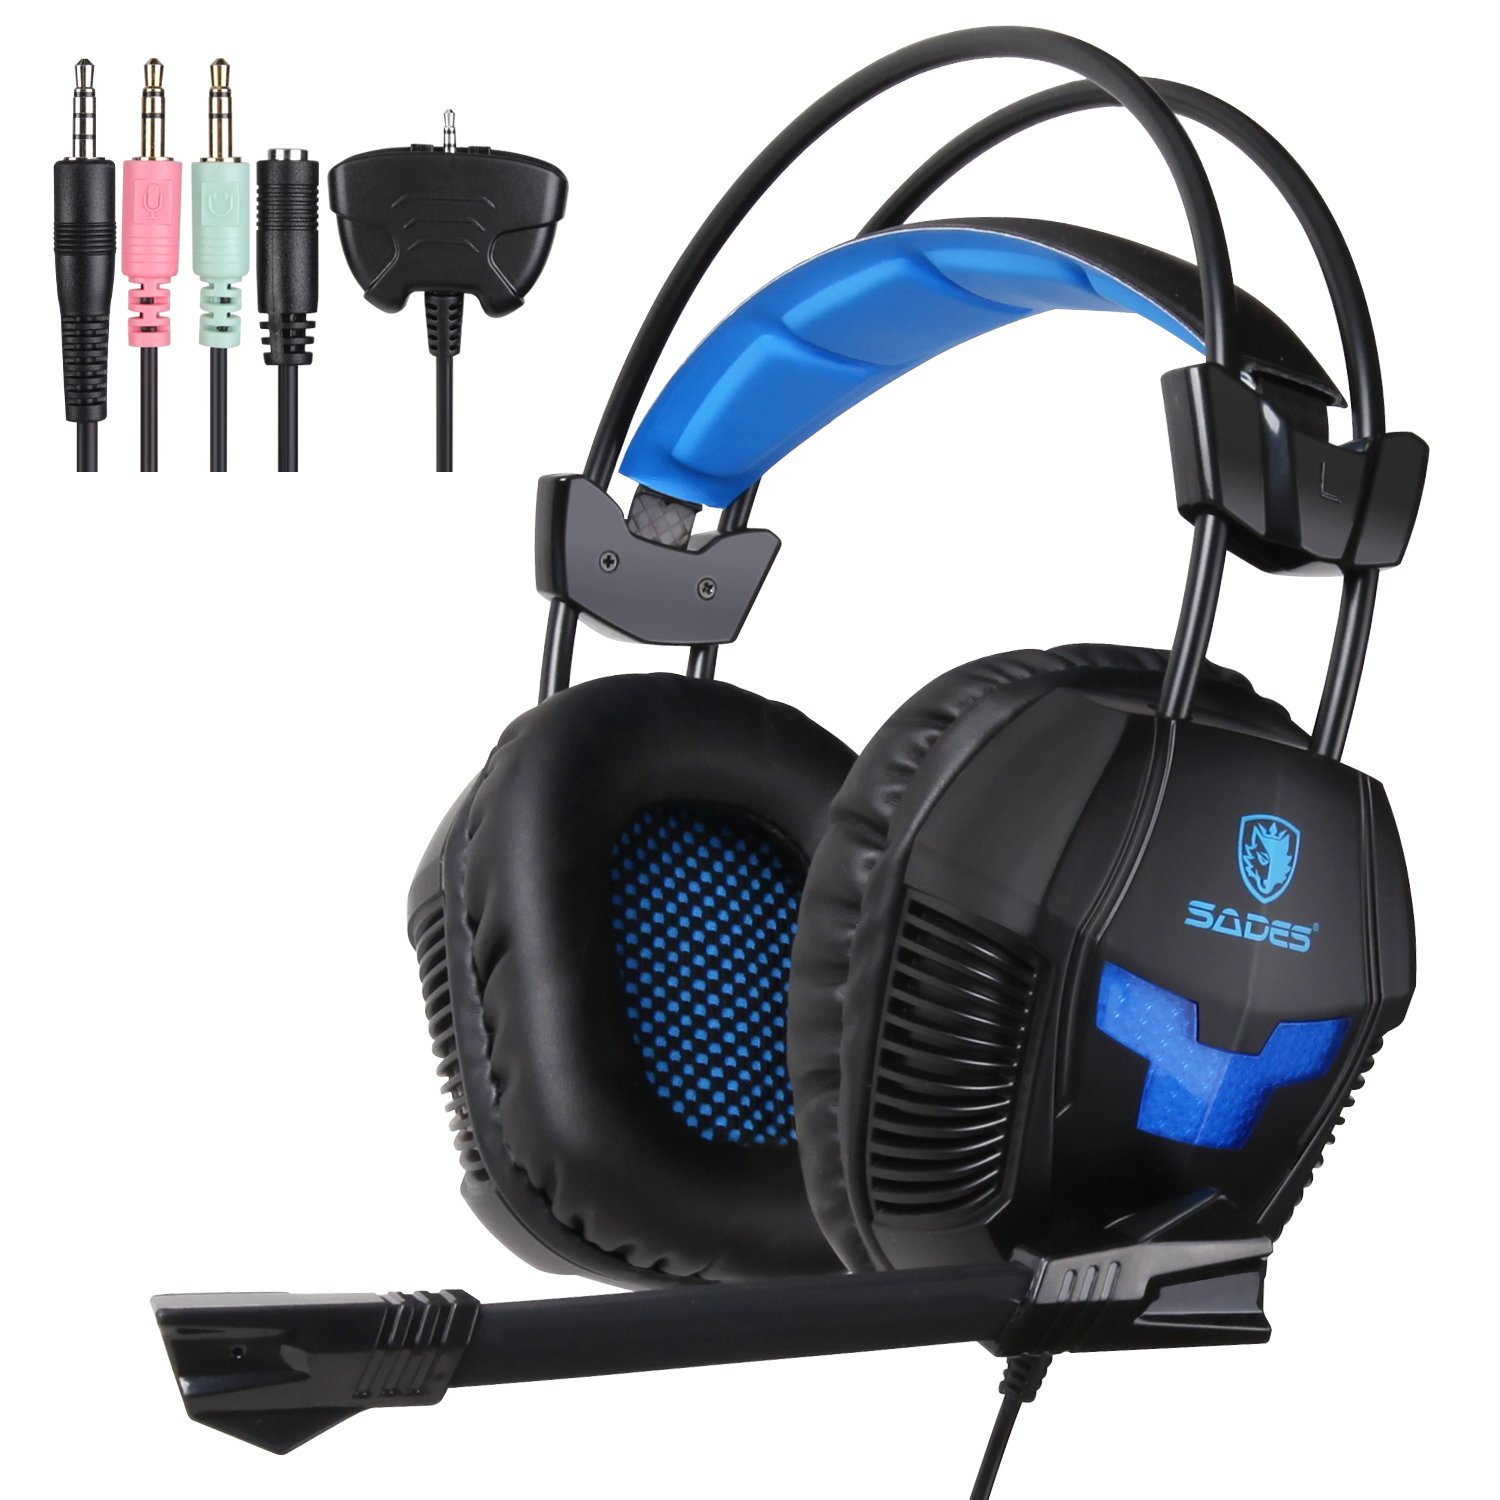 Sades SA-921 Professional Wired PC Gaming Headset Over Ear Headphones with Microphone for PC Laptop PS4 Xbox Cellphone